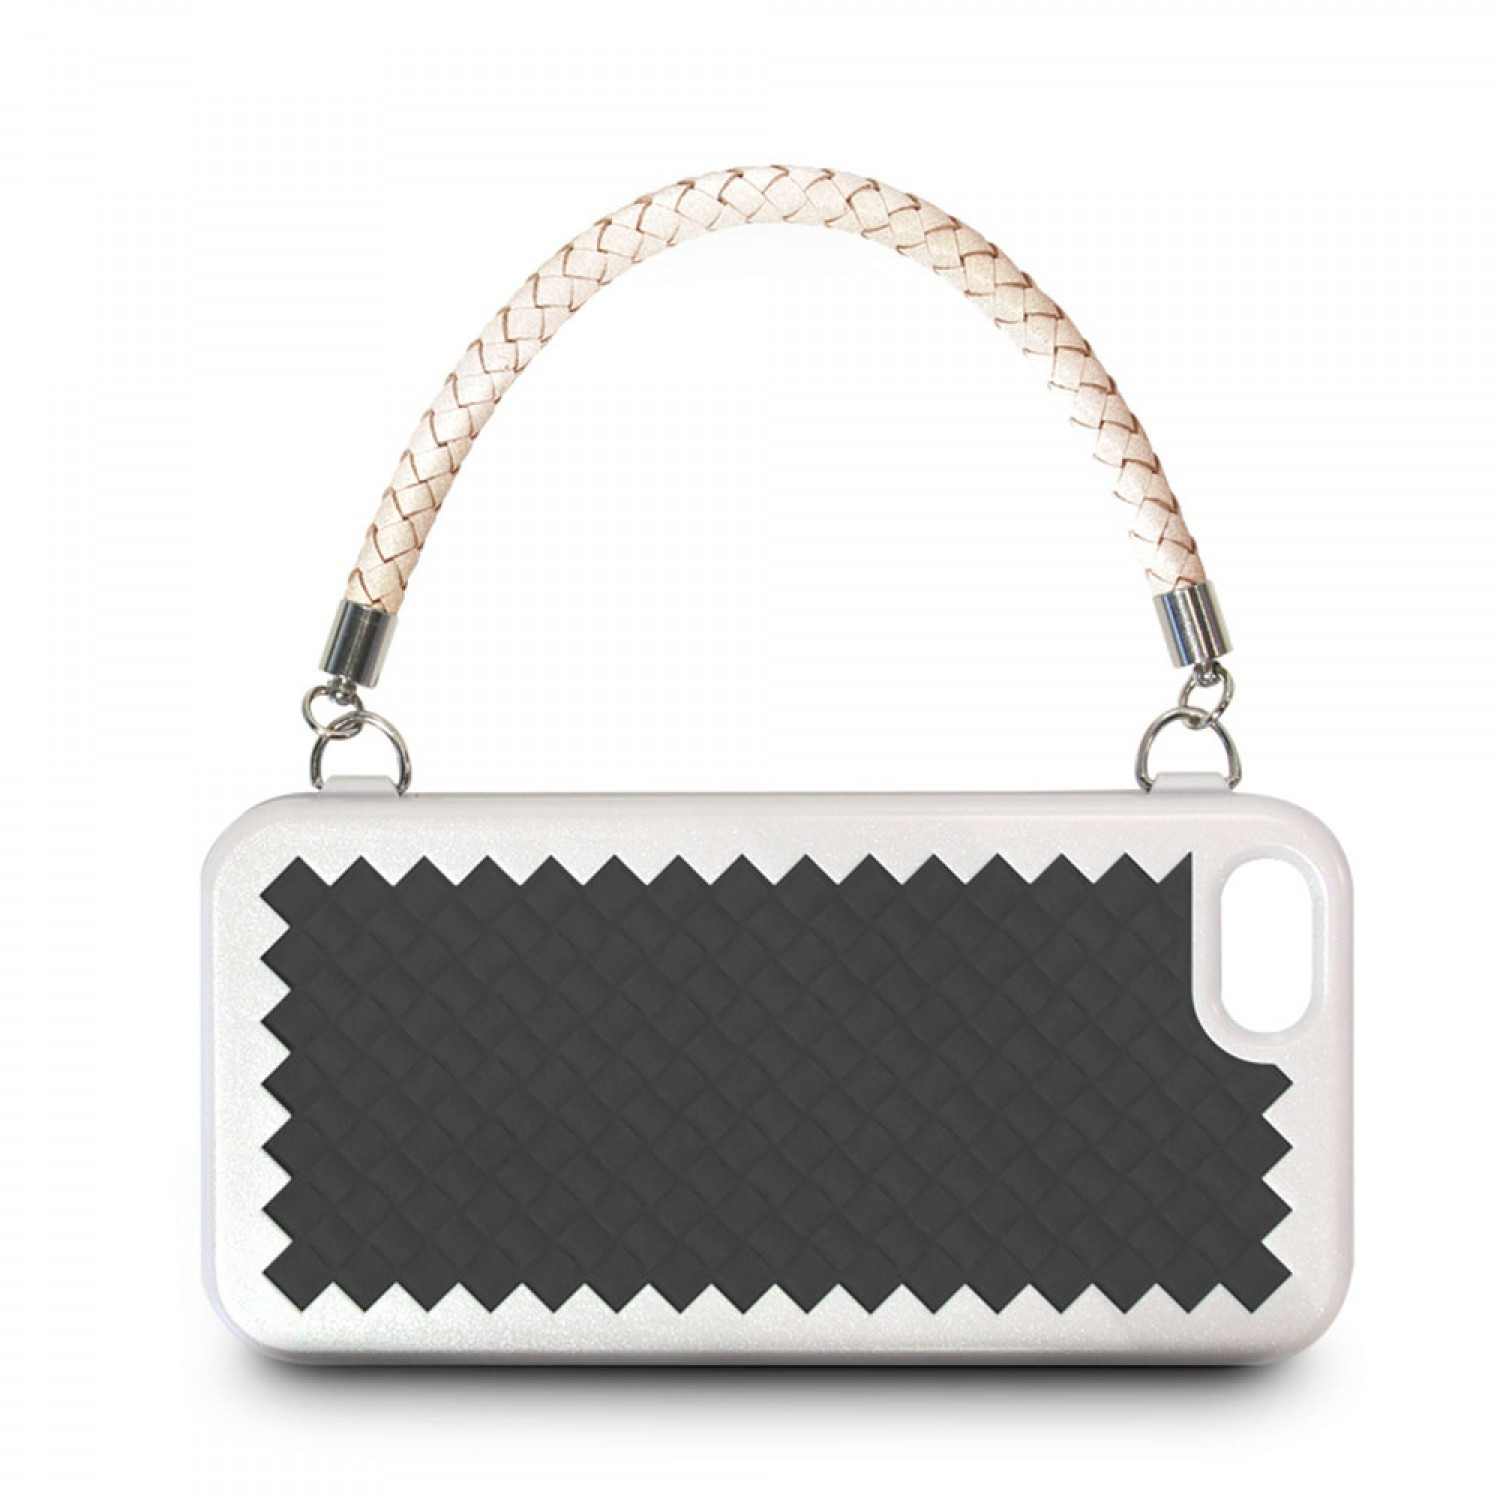 Joy Factory New York Clutch Hülle iPhone 5(S)/SE schwarz